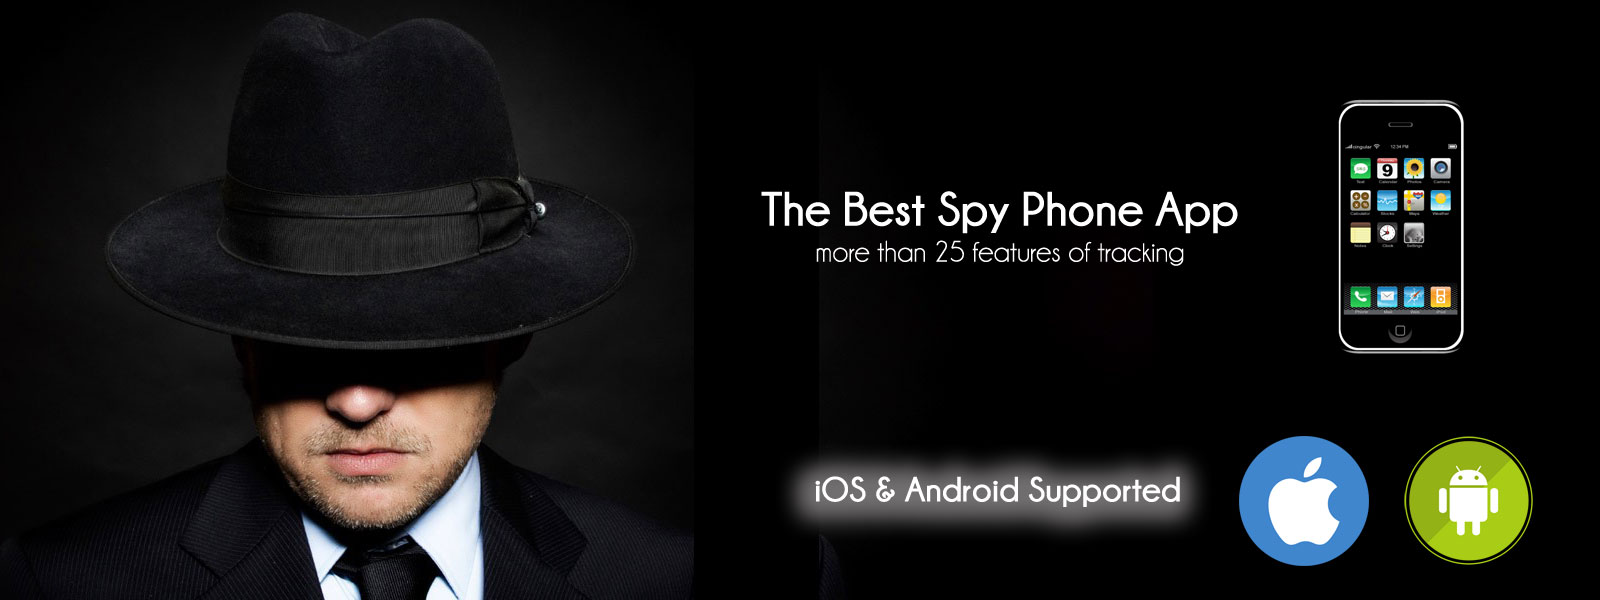 spy phone app for android & ios